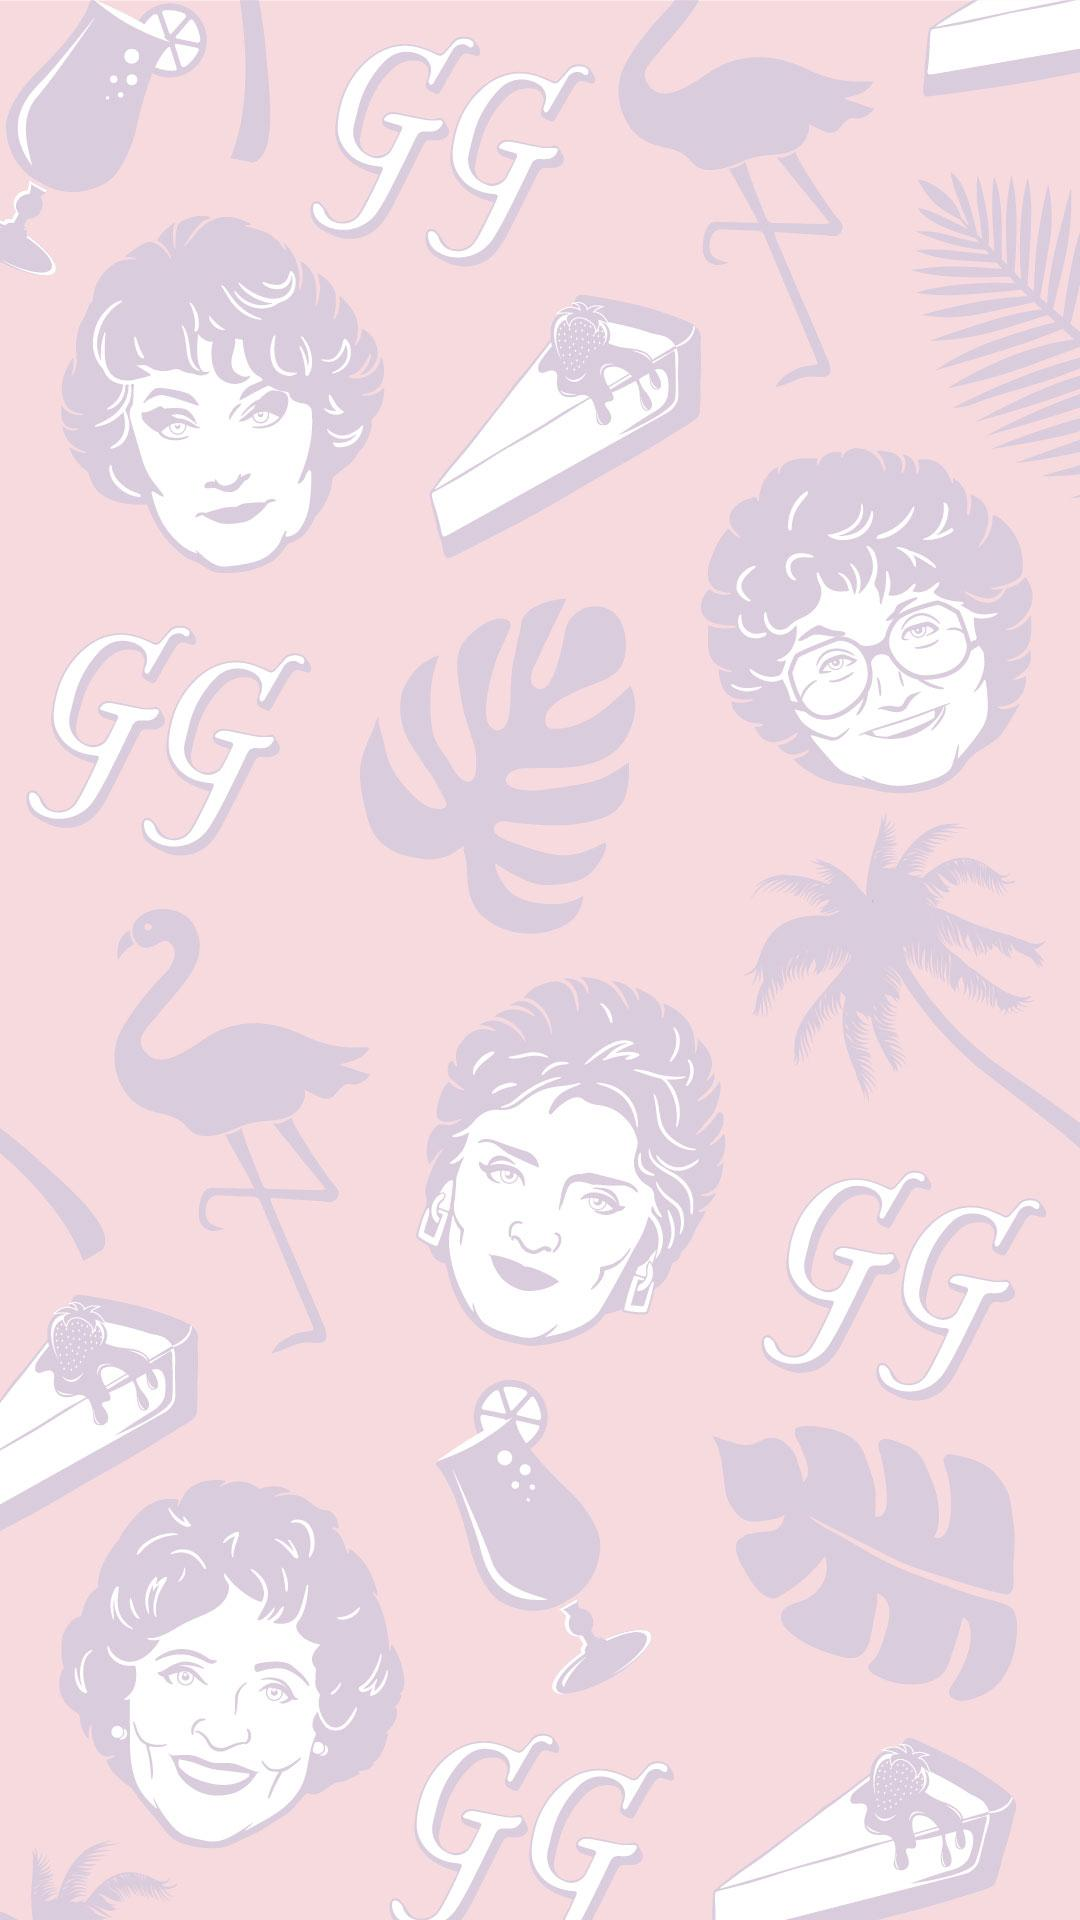 14 Golden Girls Phone Wallpapers to Thank You for Being a Friend